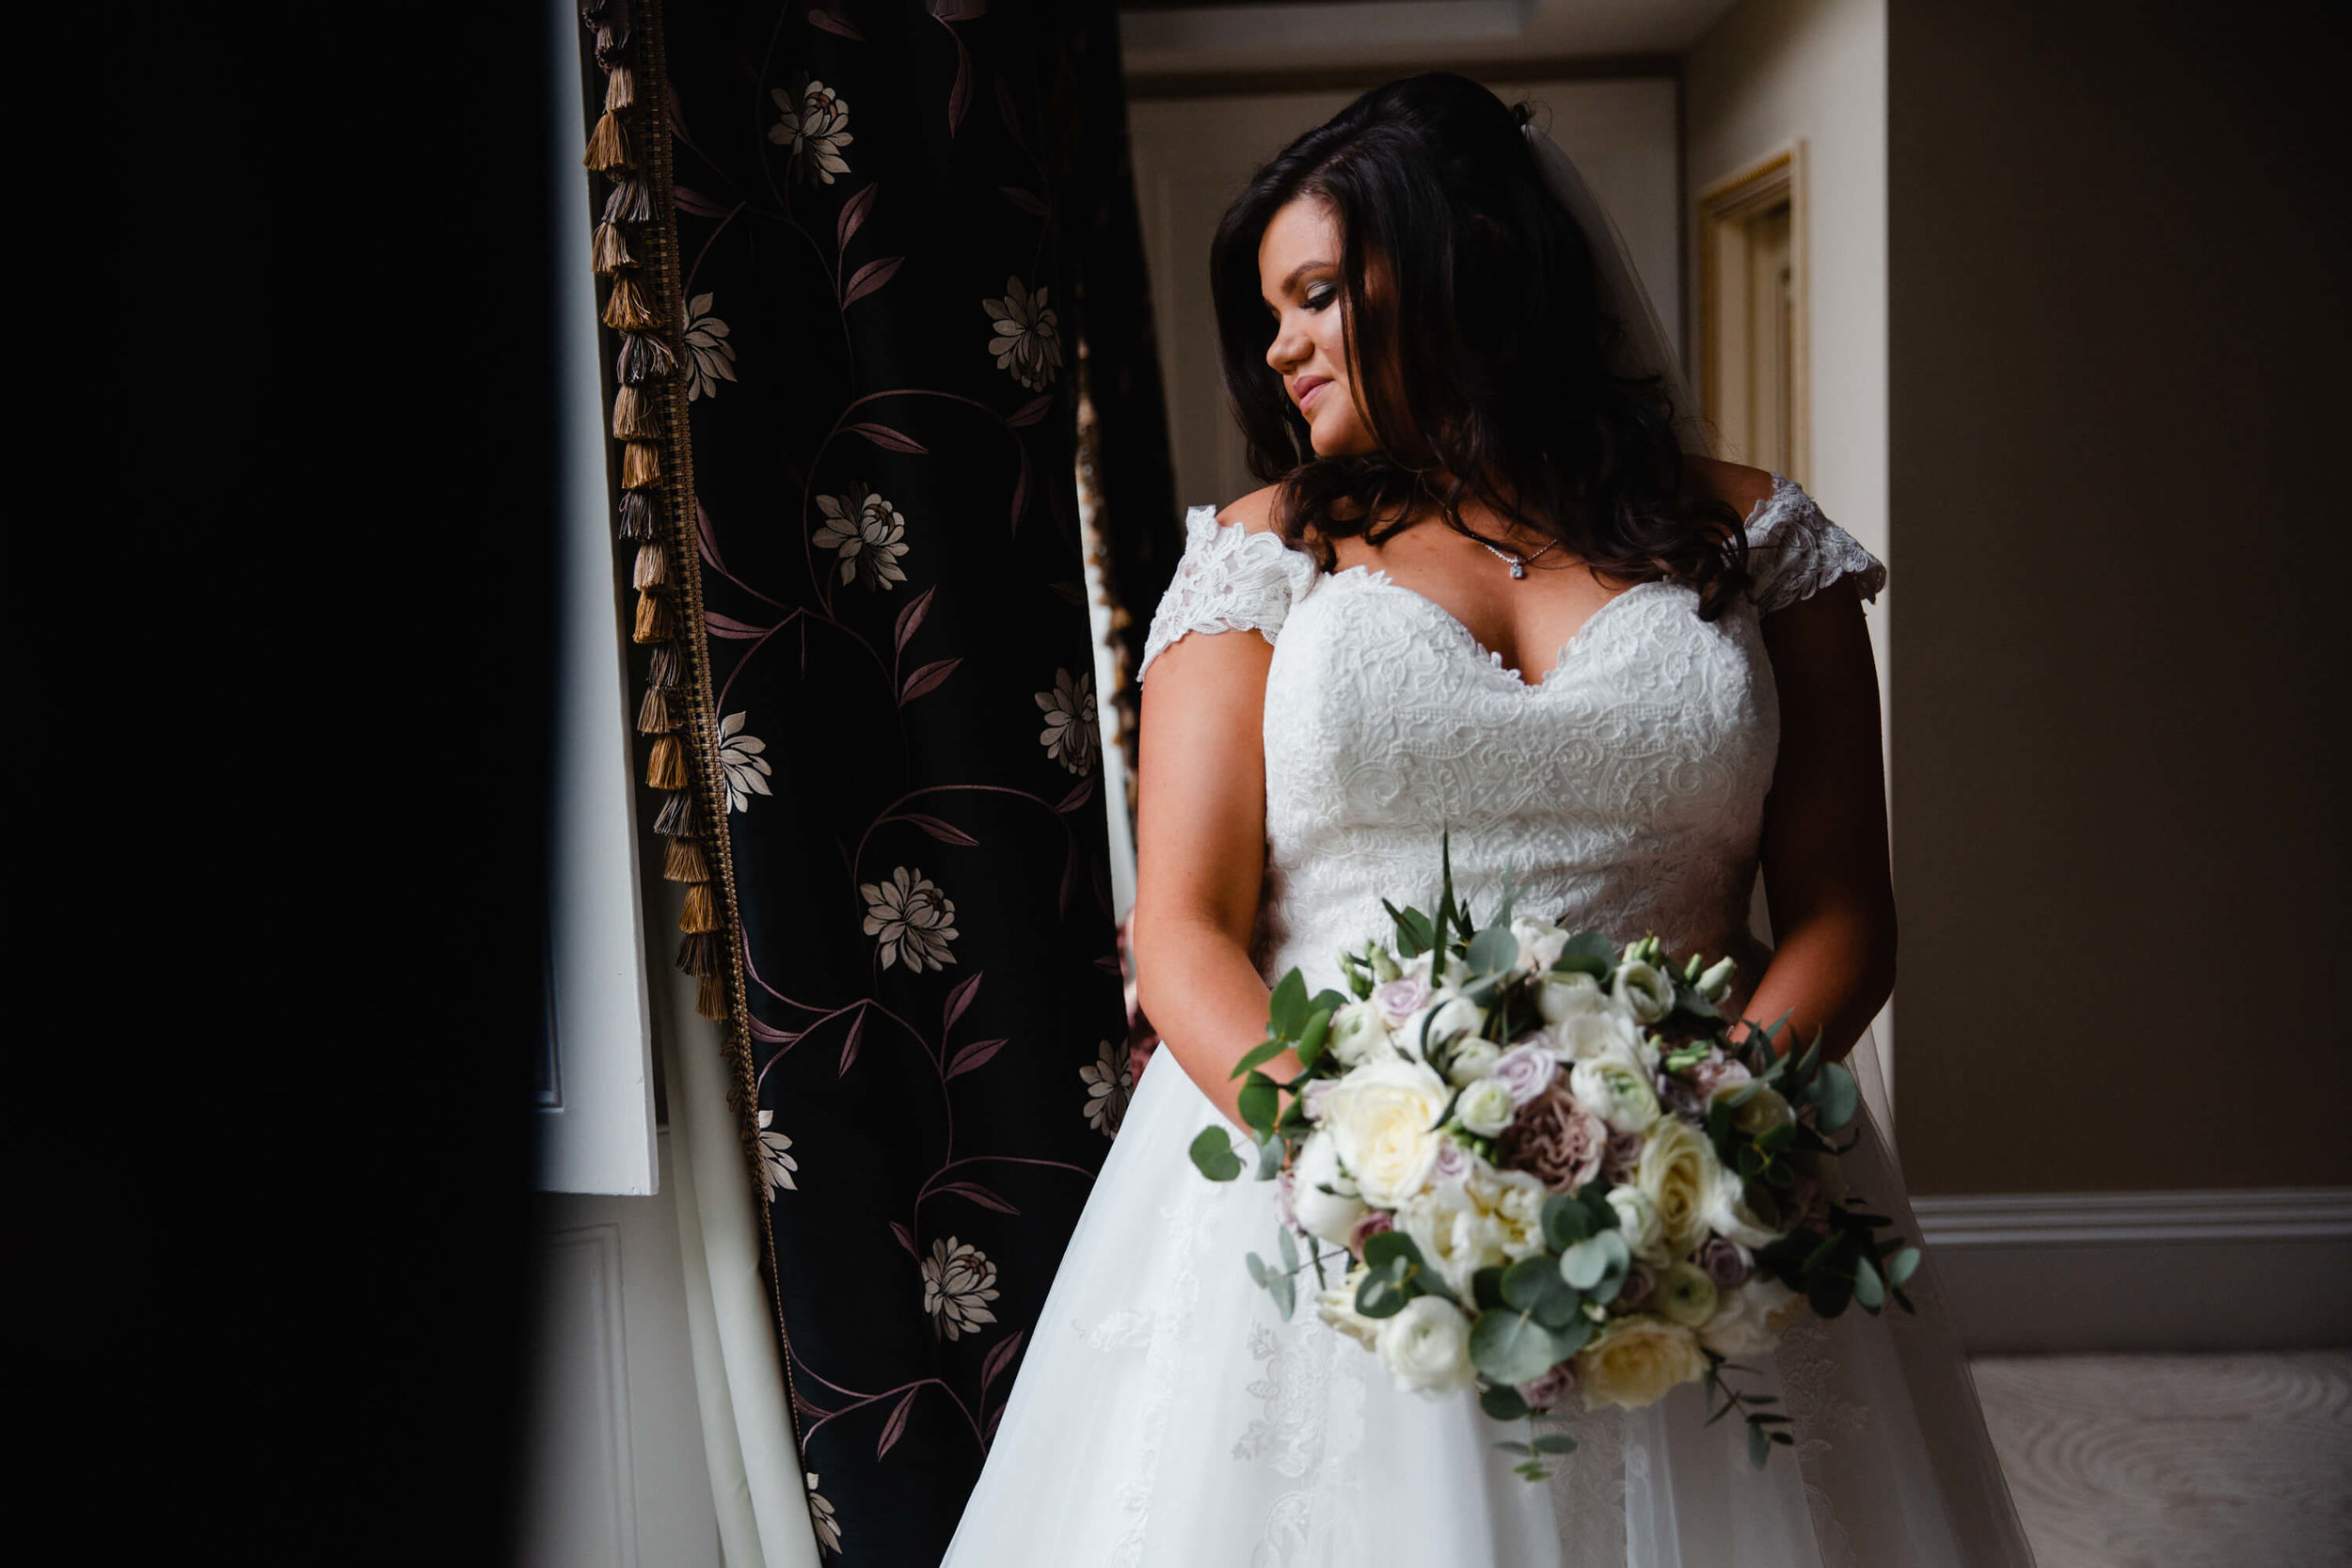 portrait of bride in window holding bouquet of flowers at haigh hall